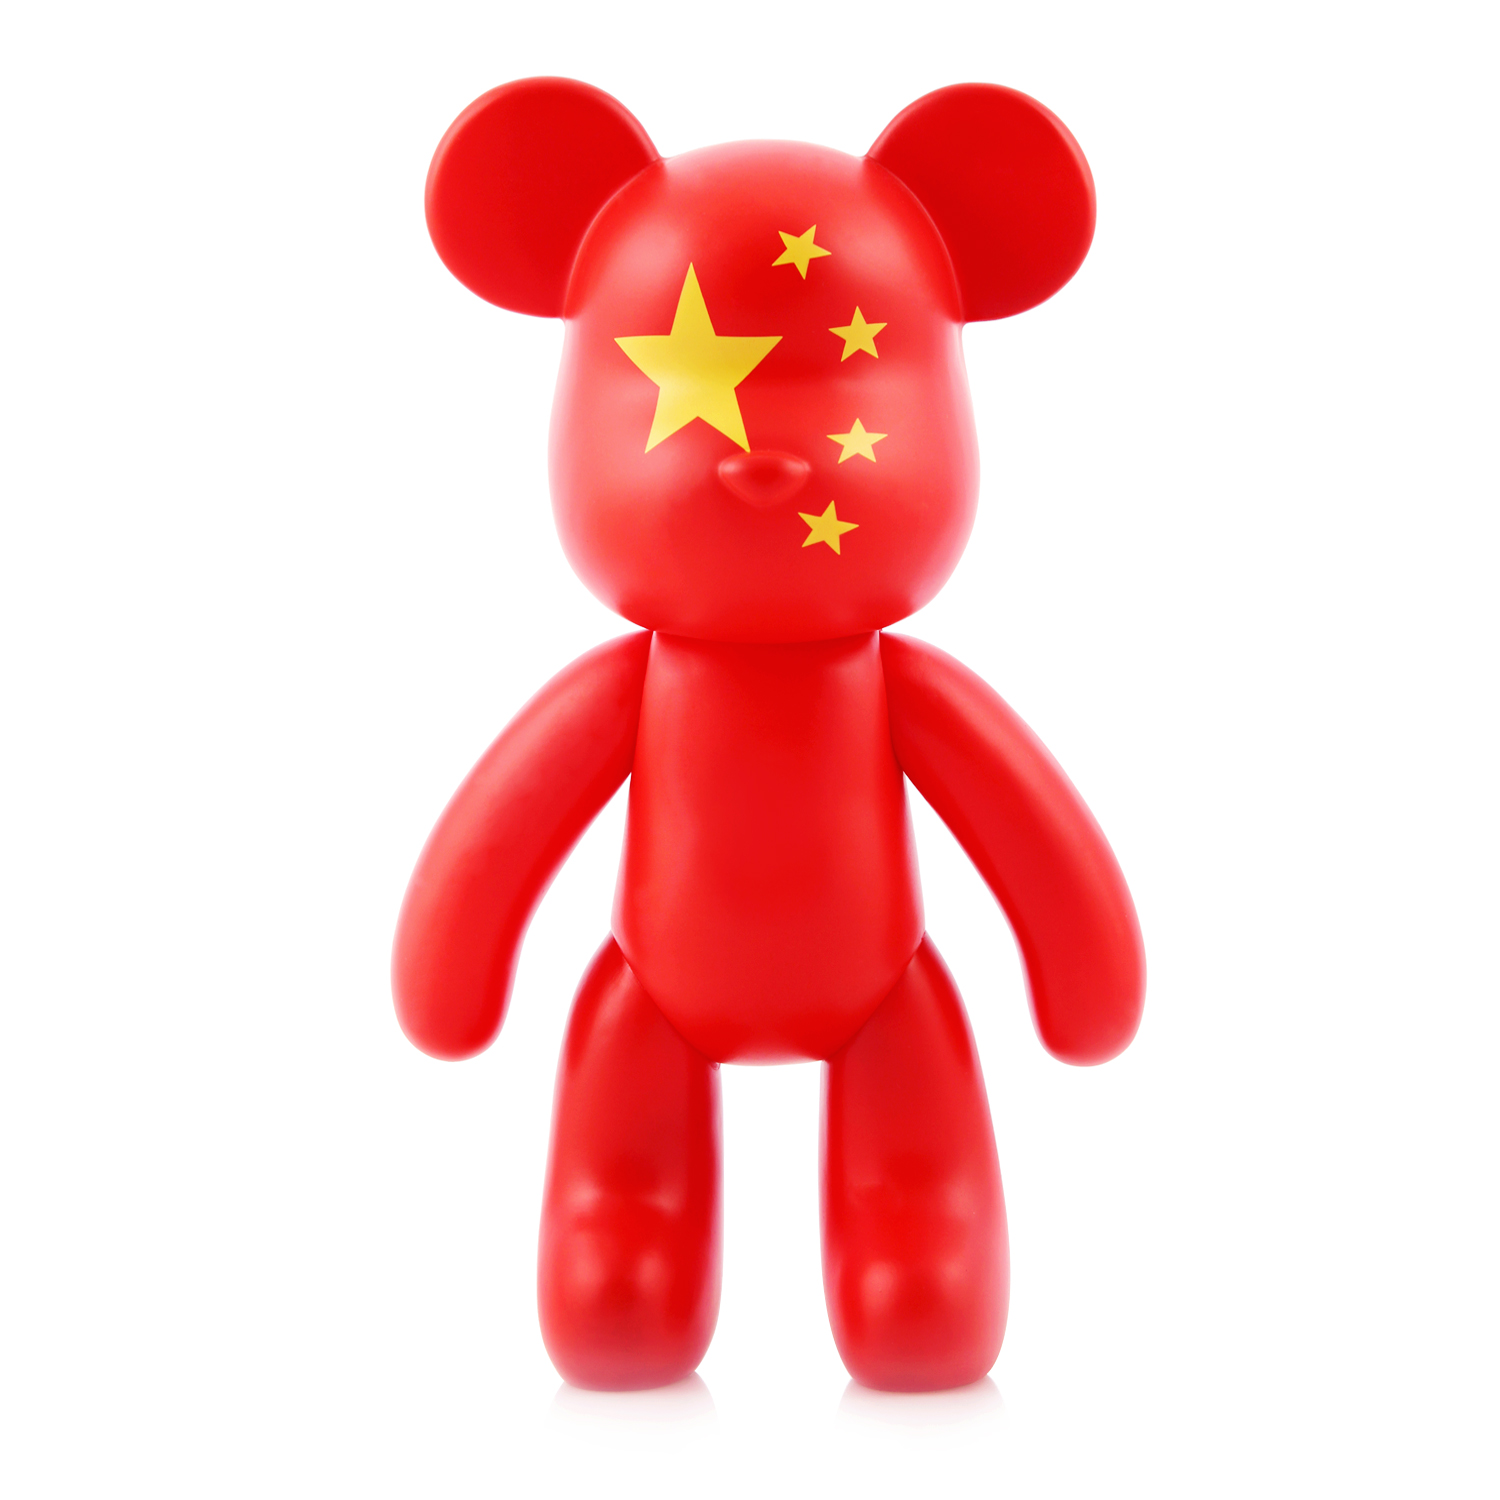 10 inch red bearbrick be@rbrick medicom toy great gift for home decoration<br><br>Aliexpress